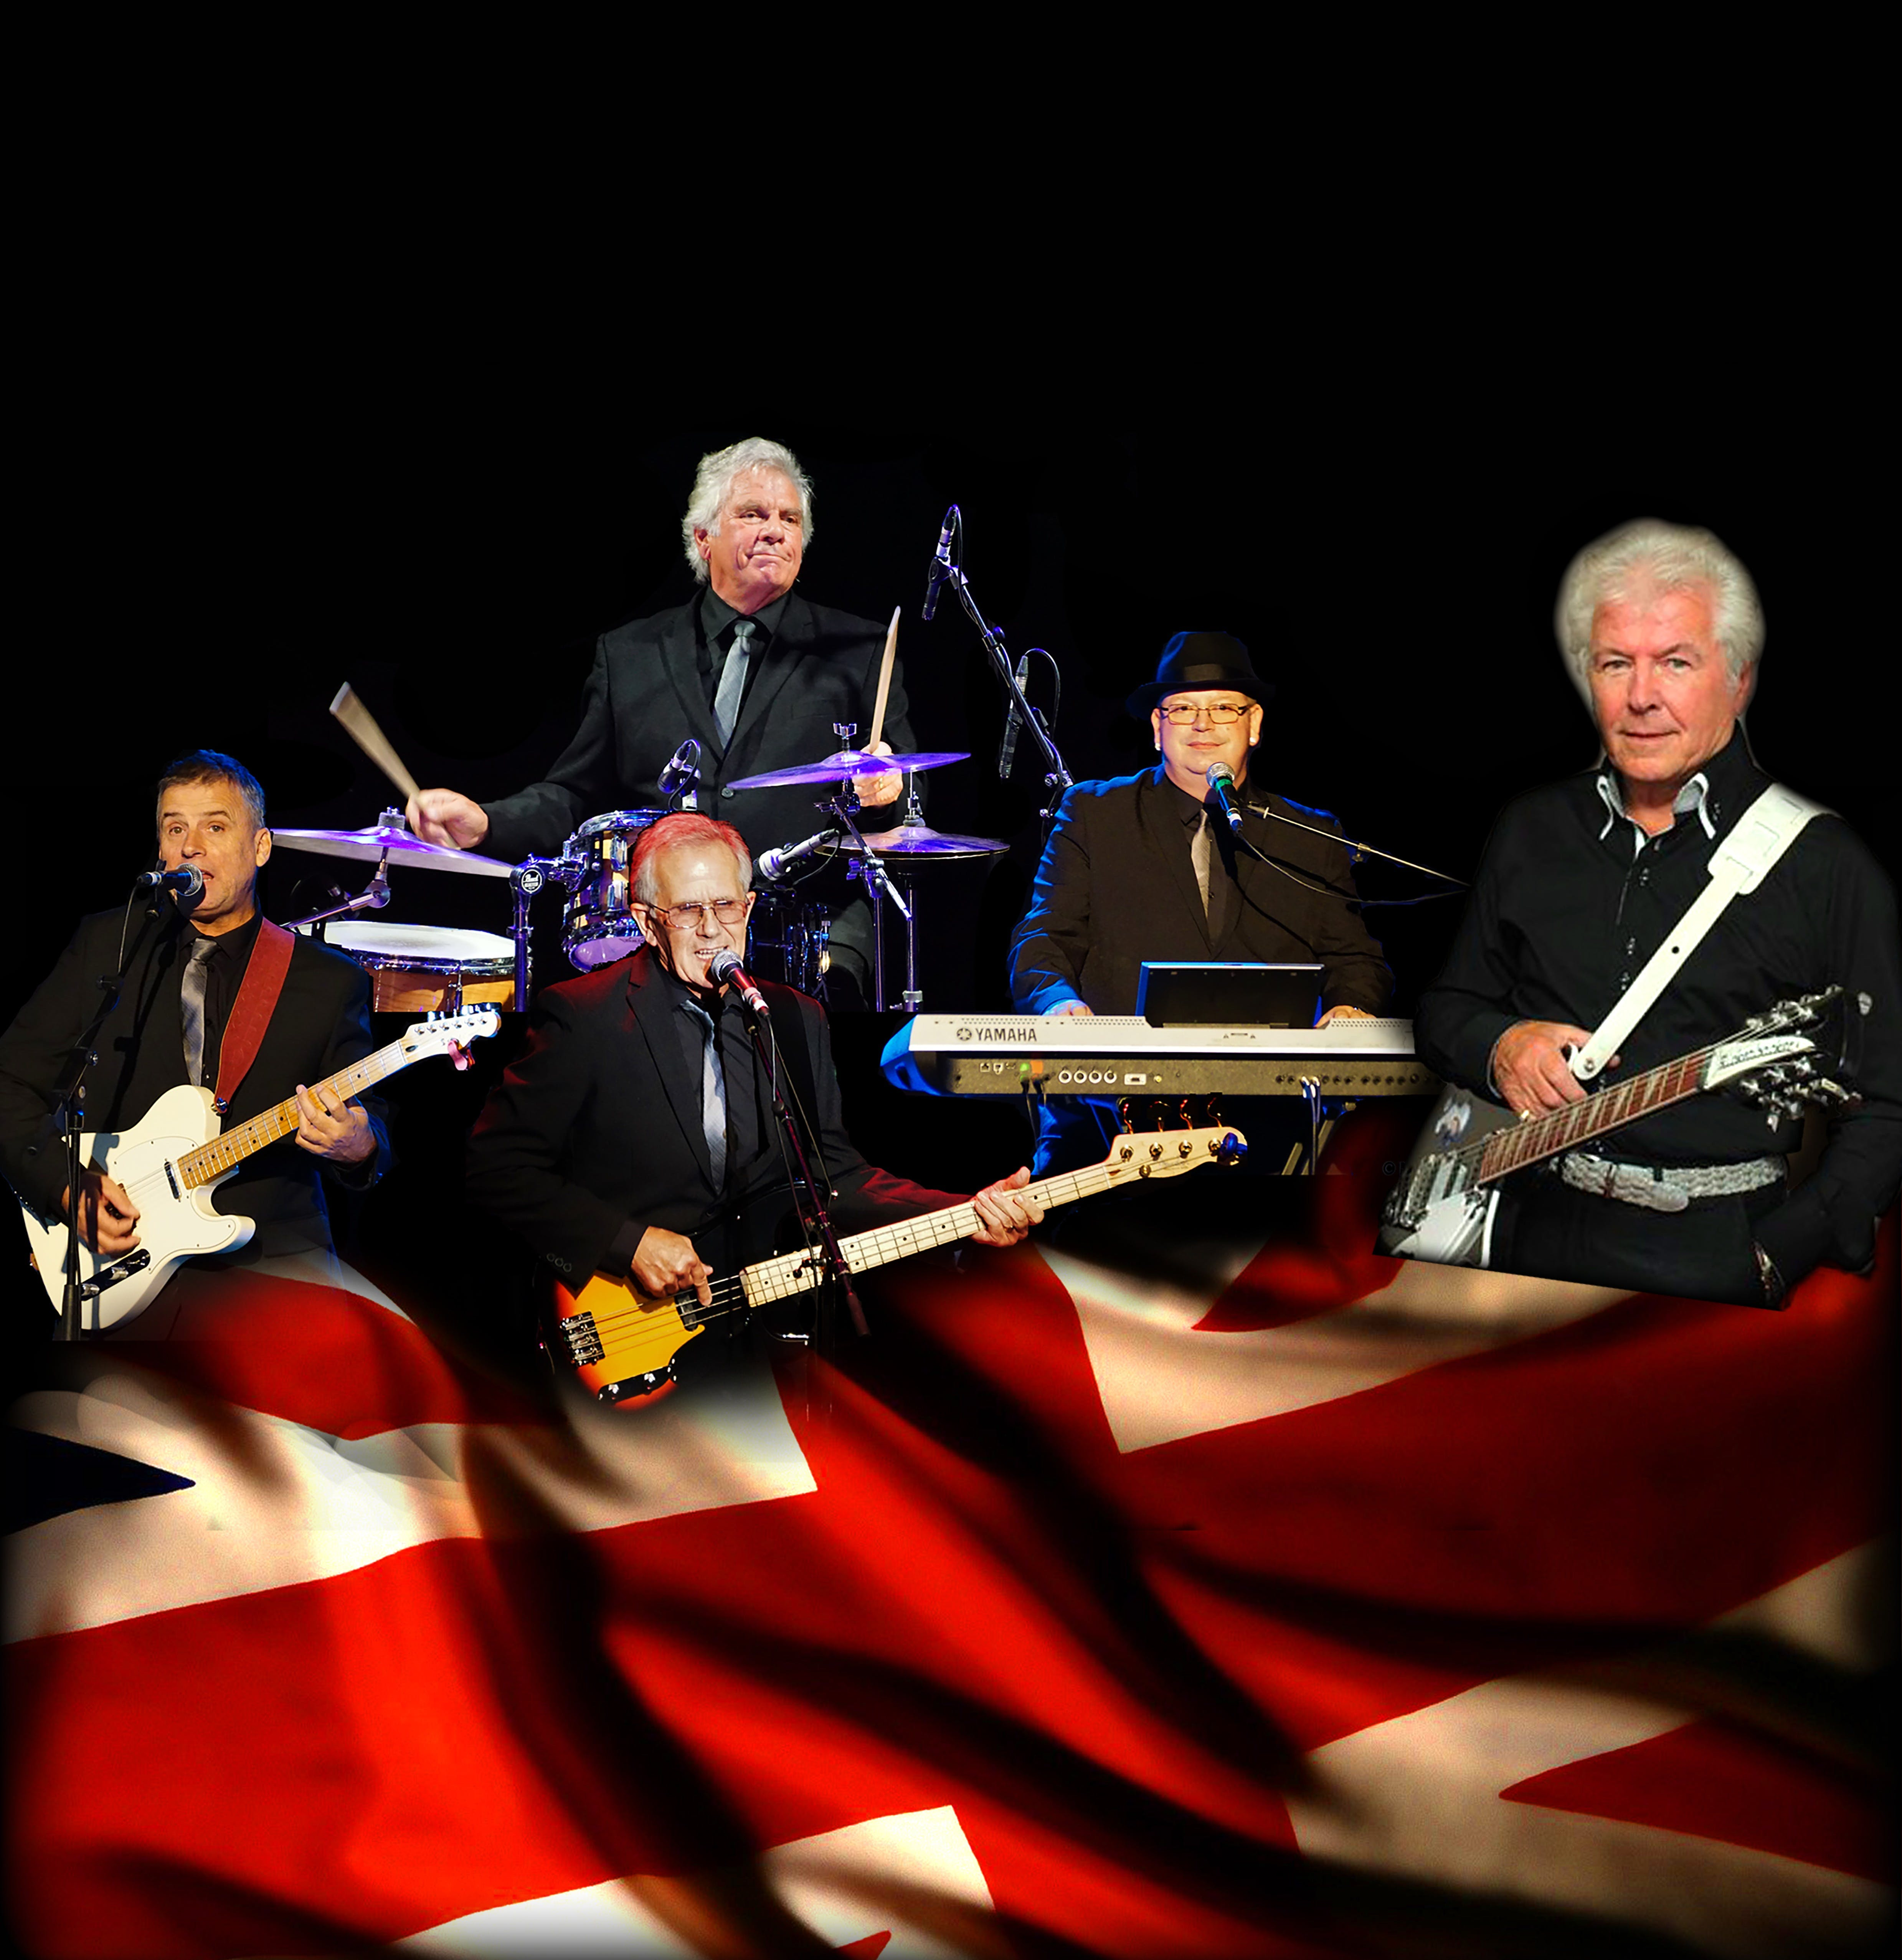 Herman's Hermits with Special Guest Mike Pender - The Six O'Clock Hop - VIC Tourism